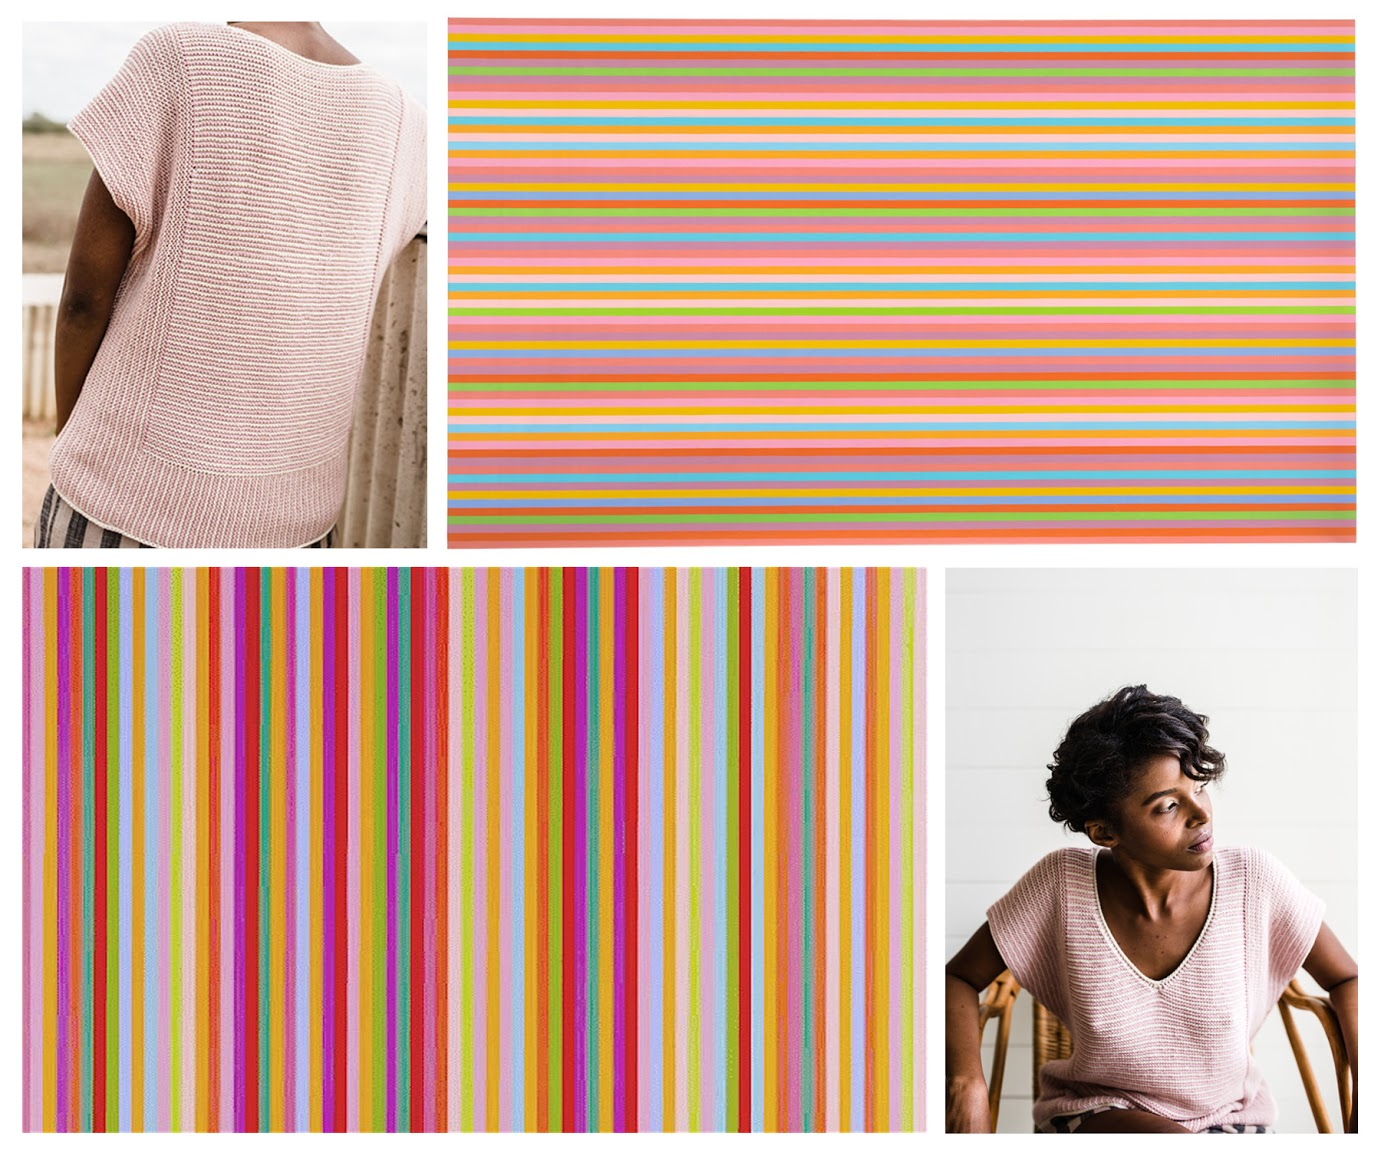 Top left and bottom right:  Riley tee by Amy Christoffers  / Top right:  / Bottom left:  Bridget Riley, Sarabande (1985)